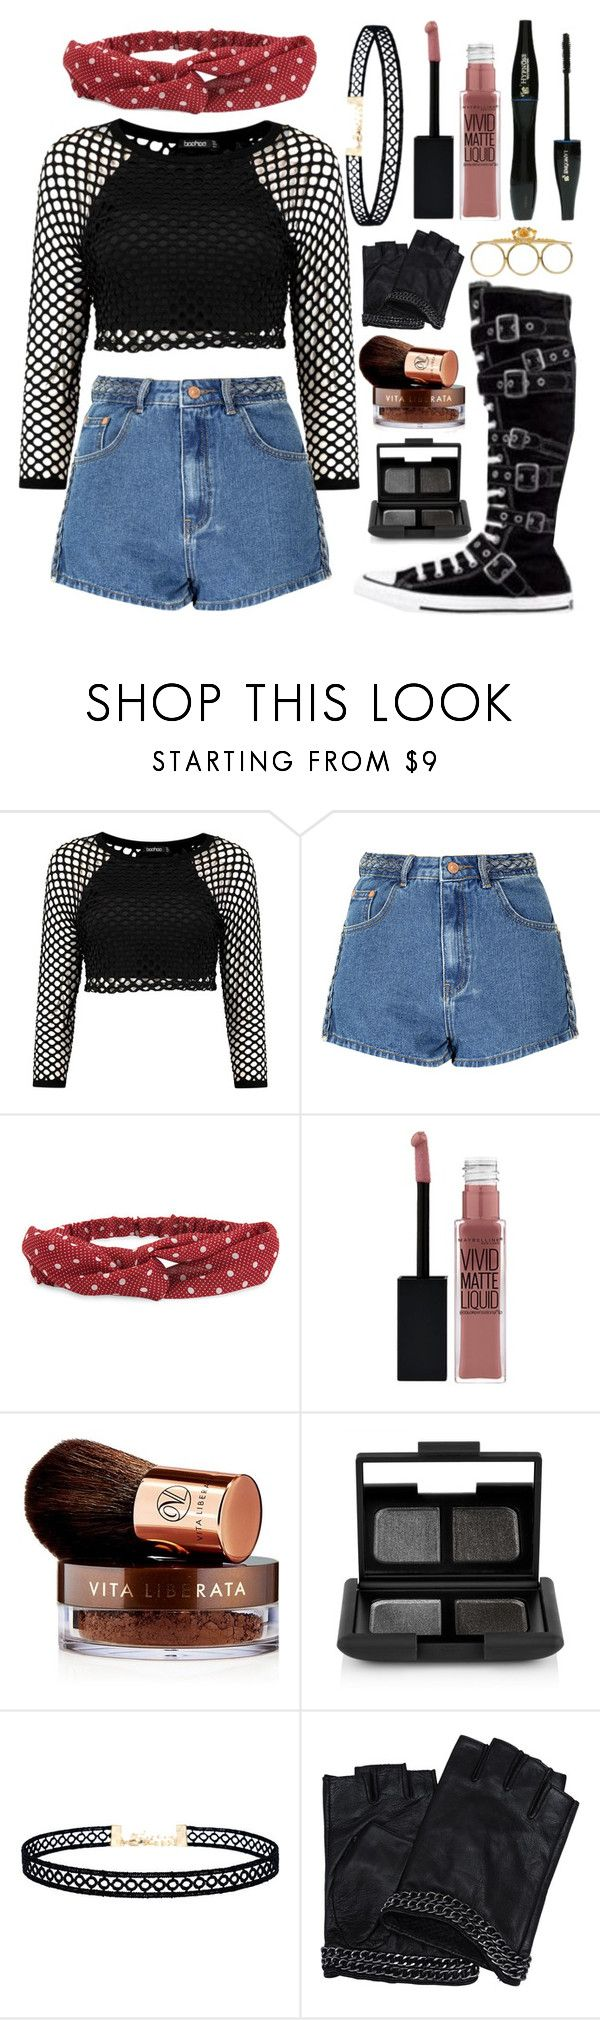 """❊Turn up the lights in here baby, extra bright I want y'all to see this"" by nerd-ville ❤ liked on Polyvore featuring Glamorous, Converse, Aéropostale, Lancôme, Maybelline, Vita Liberata, NARS Cosmetics, LULUS, Karl Lagerfeld and Katie Rowland"